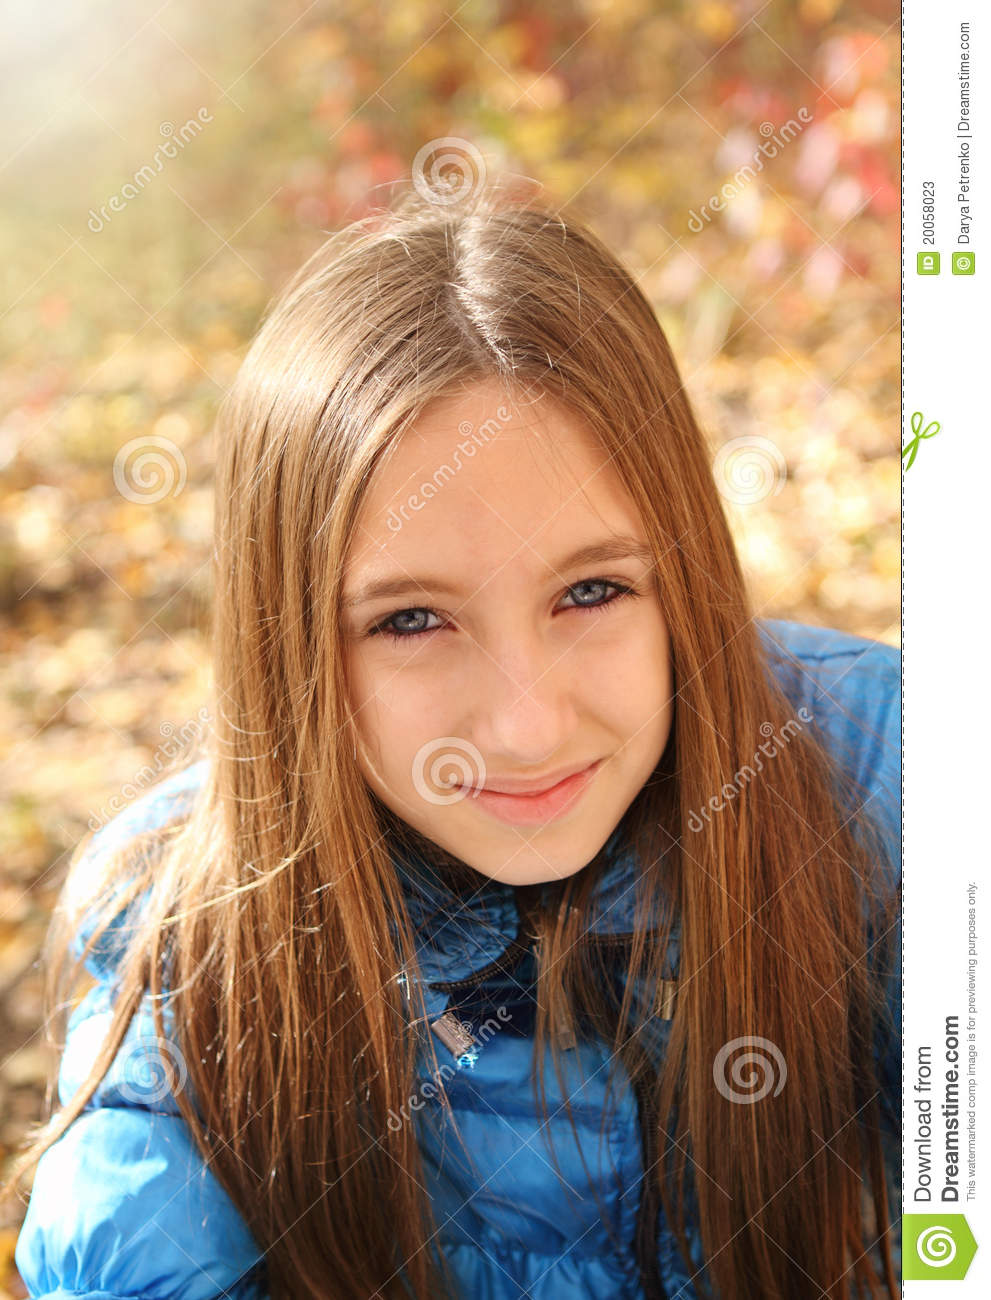 Happy Teen By Crumbling Wall Stock Image: Portrait Of A Happy Teen Girl Stock Photos